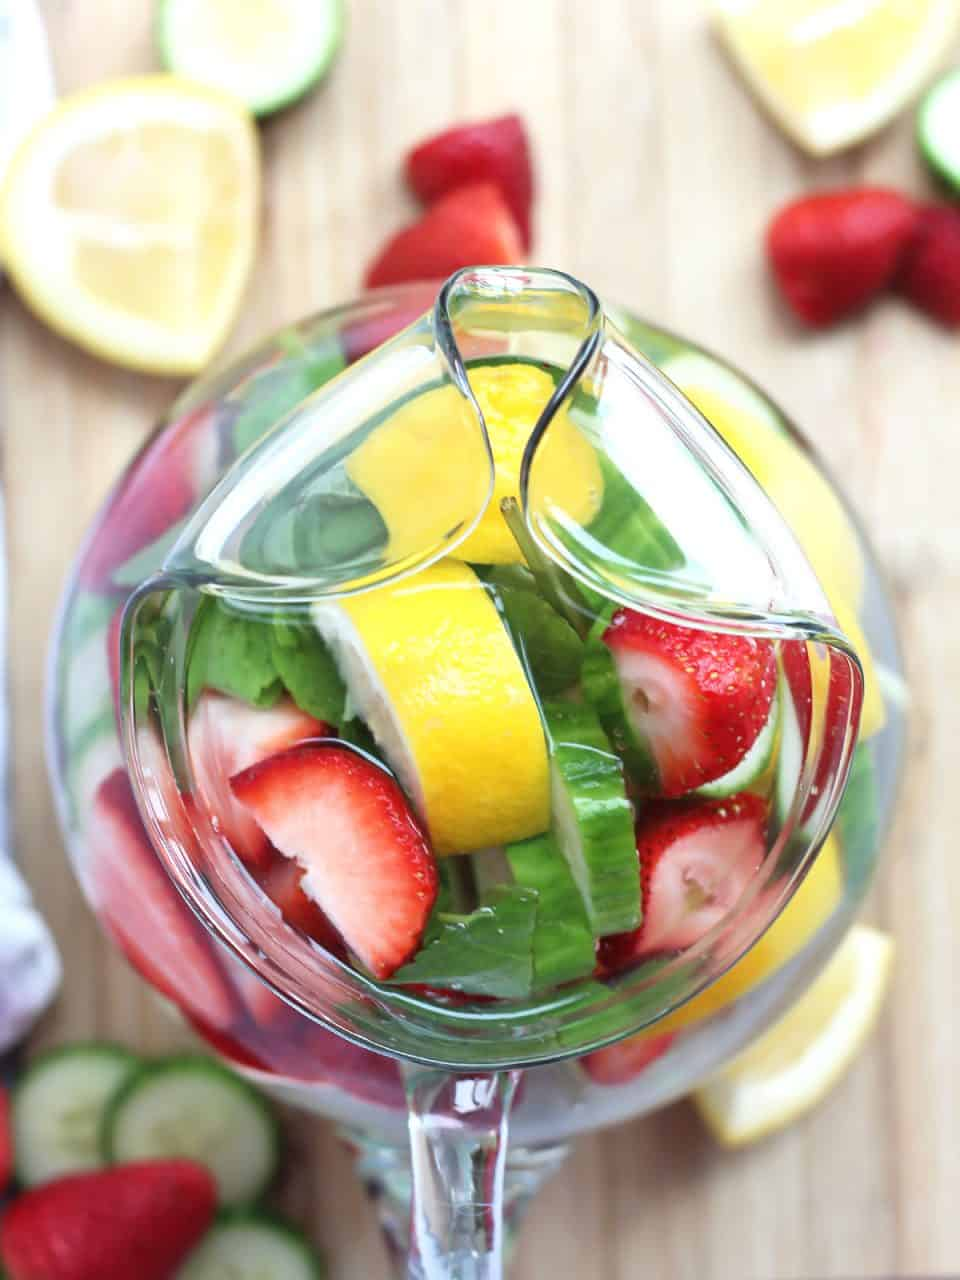 Overhead shot of the strawberry infused water in a glass jug.